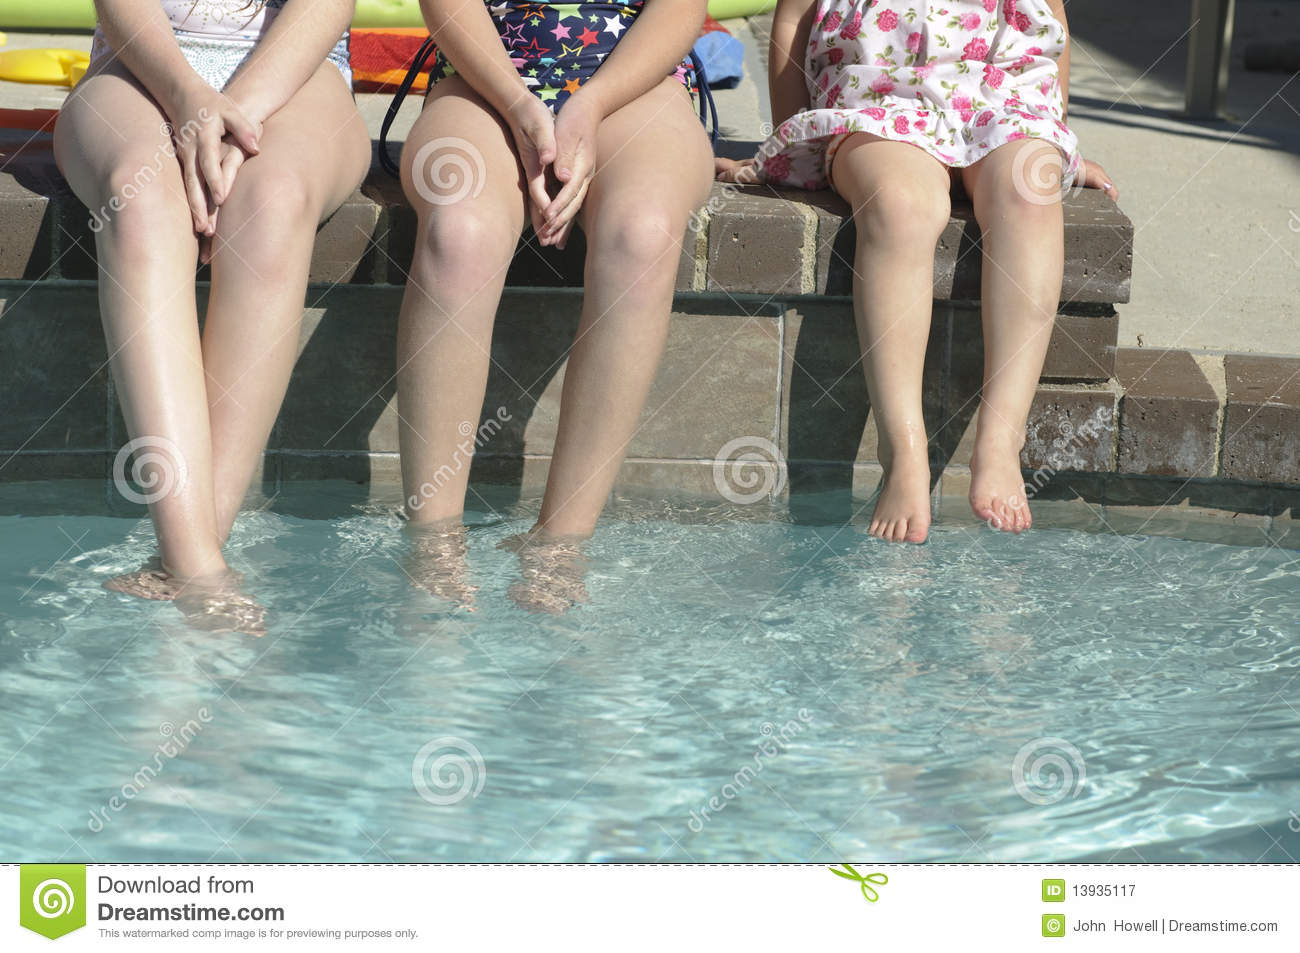 Children with feet in pool